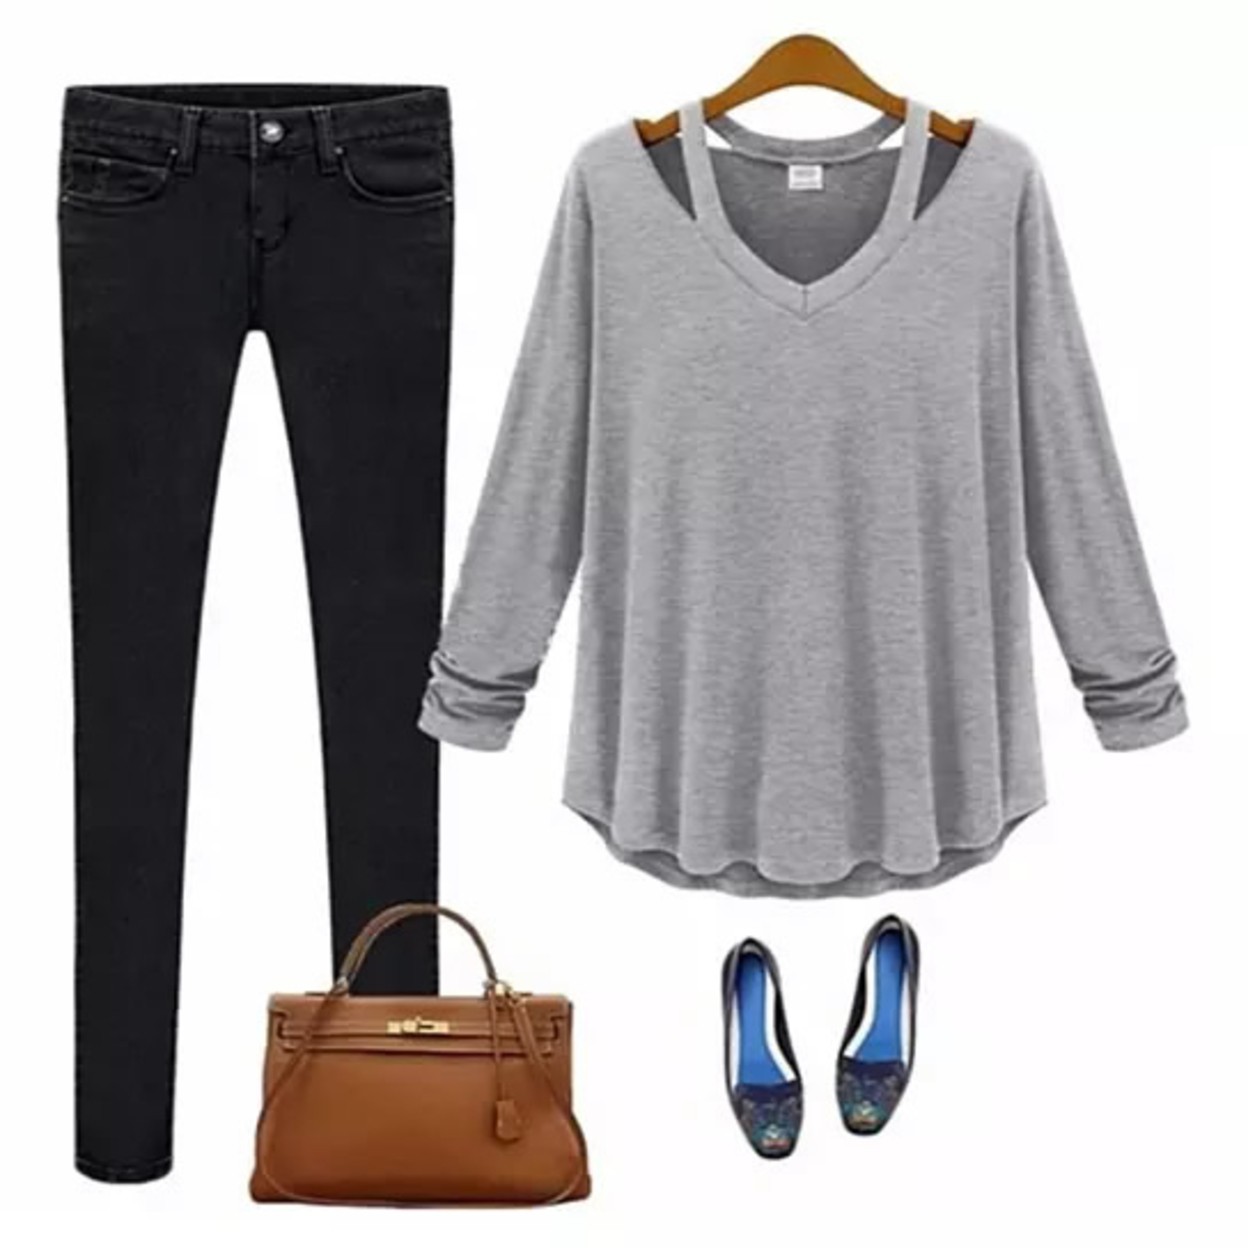 Lounge Top Long Sleeves Cut Out Style Easy Wear - Heather Gray, Small 588123832c043d2c4020f6b4